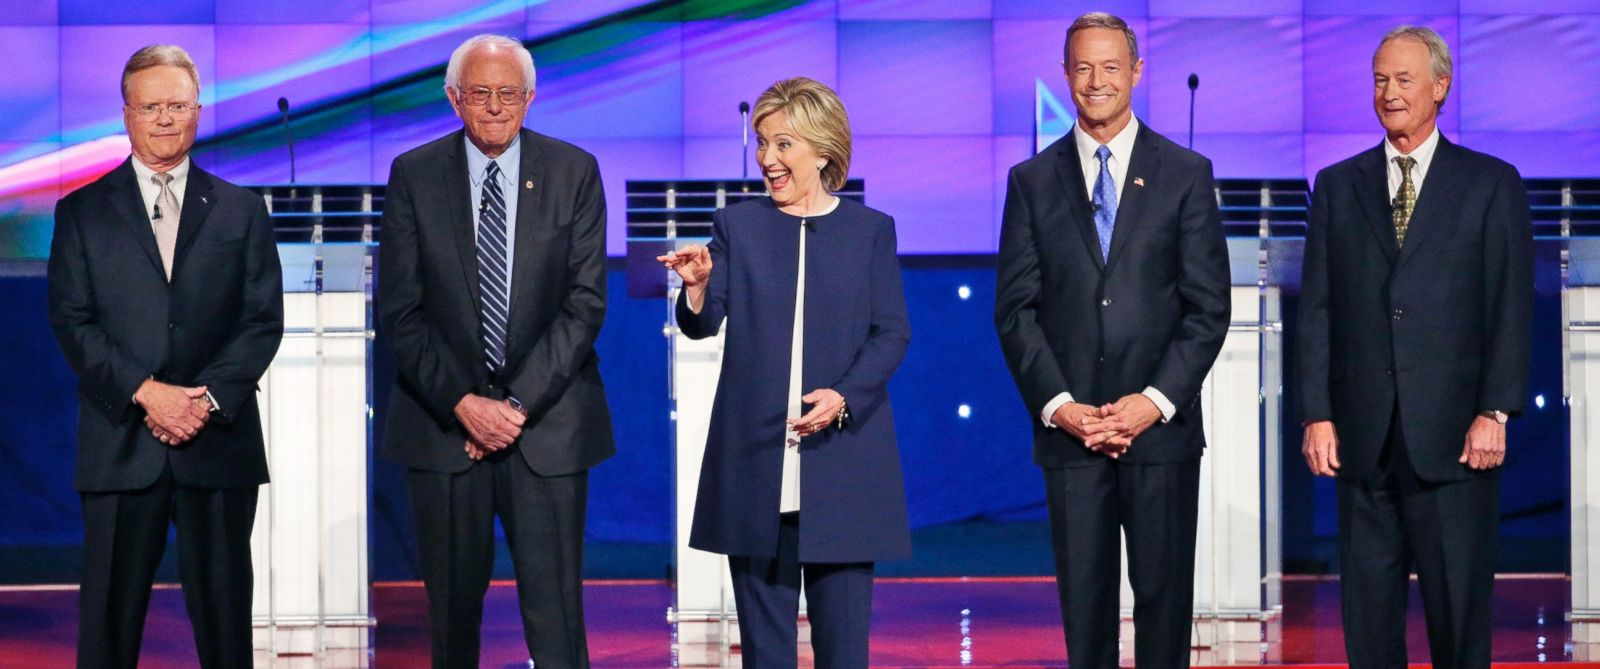 PHOTO: Democratic presidential candidates take the stage before the CNN Democratic presidential debate Tuesday, Oct. 13, 2015, in Las Vegas.